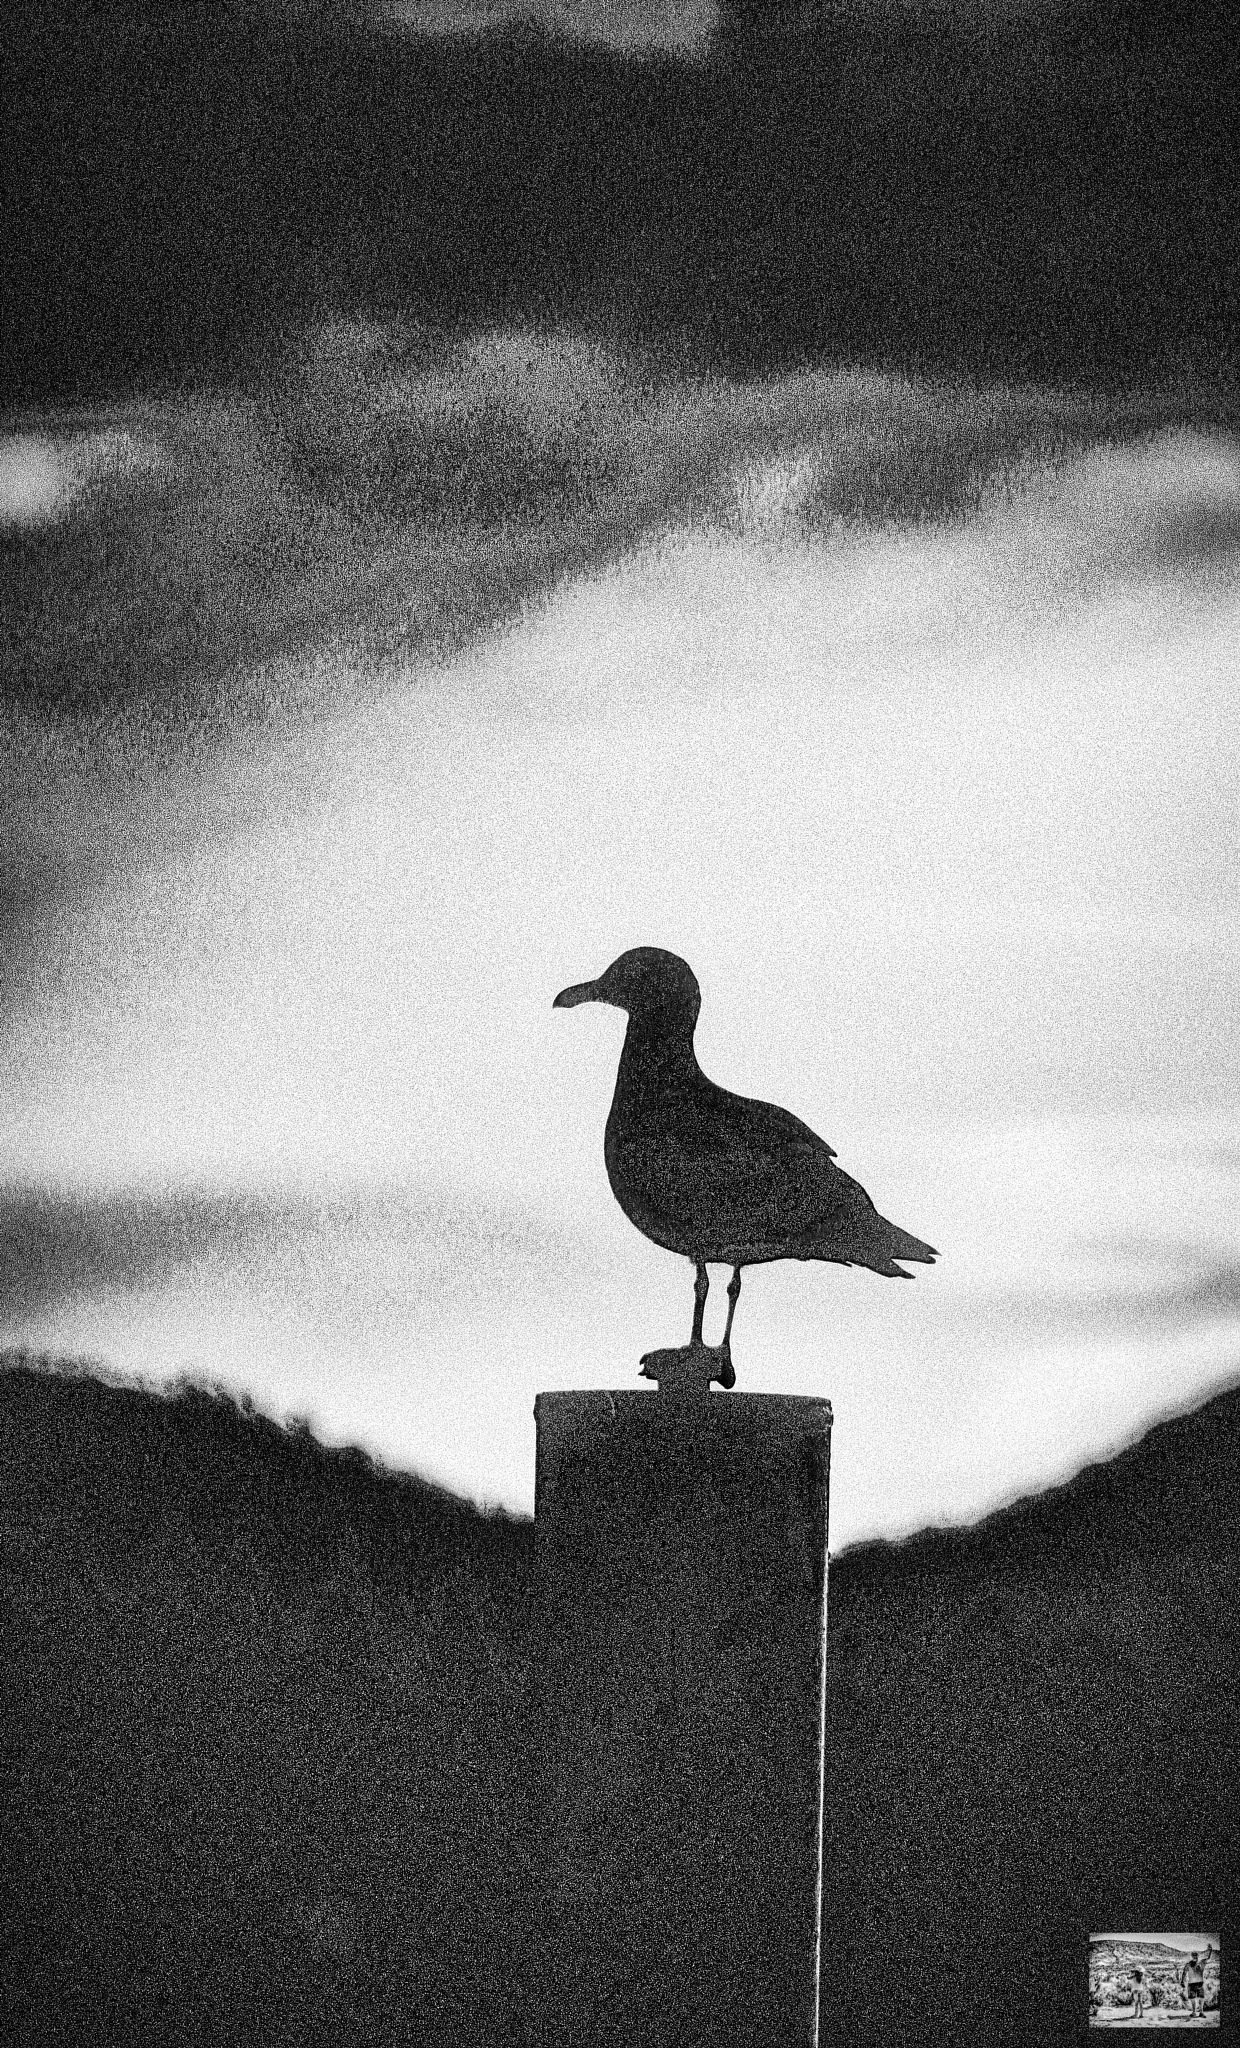 Sea Gull in Black and White by Christopher S Johnson